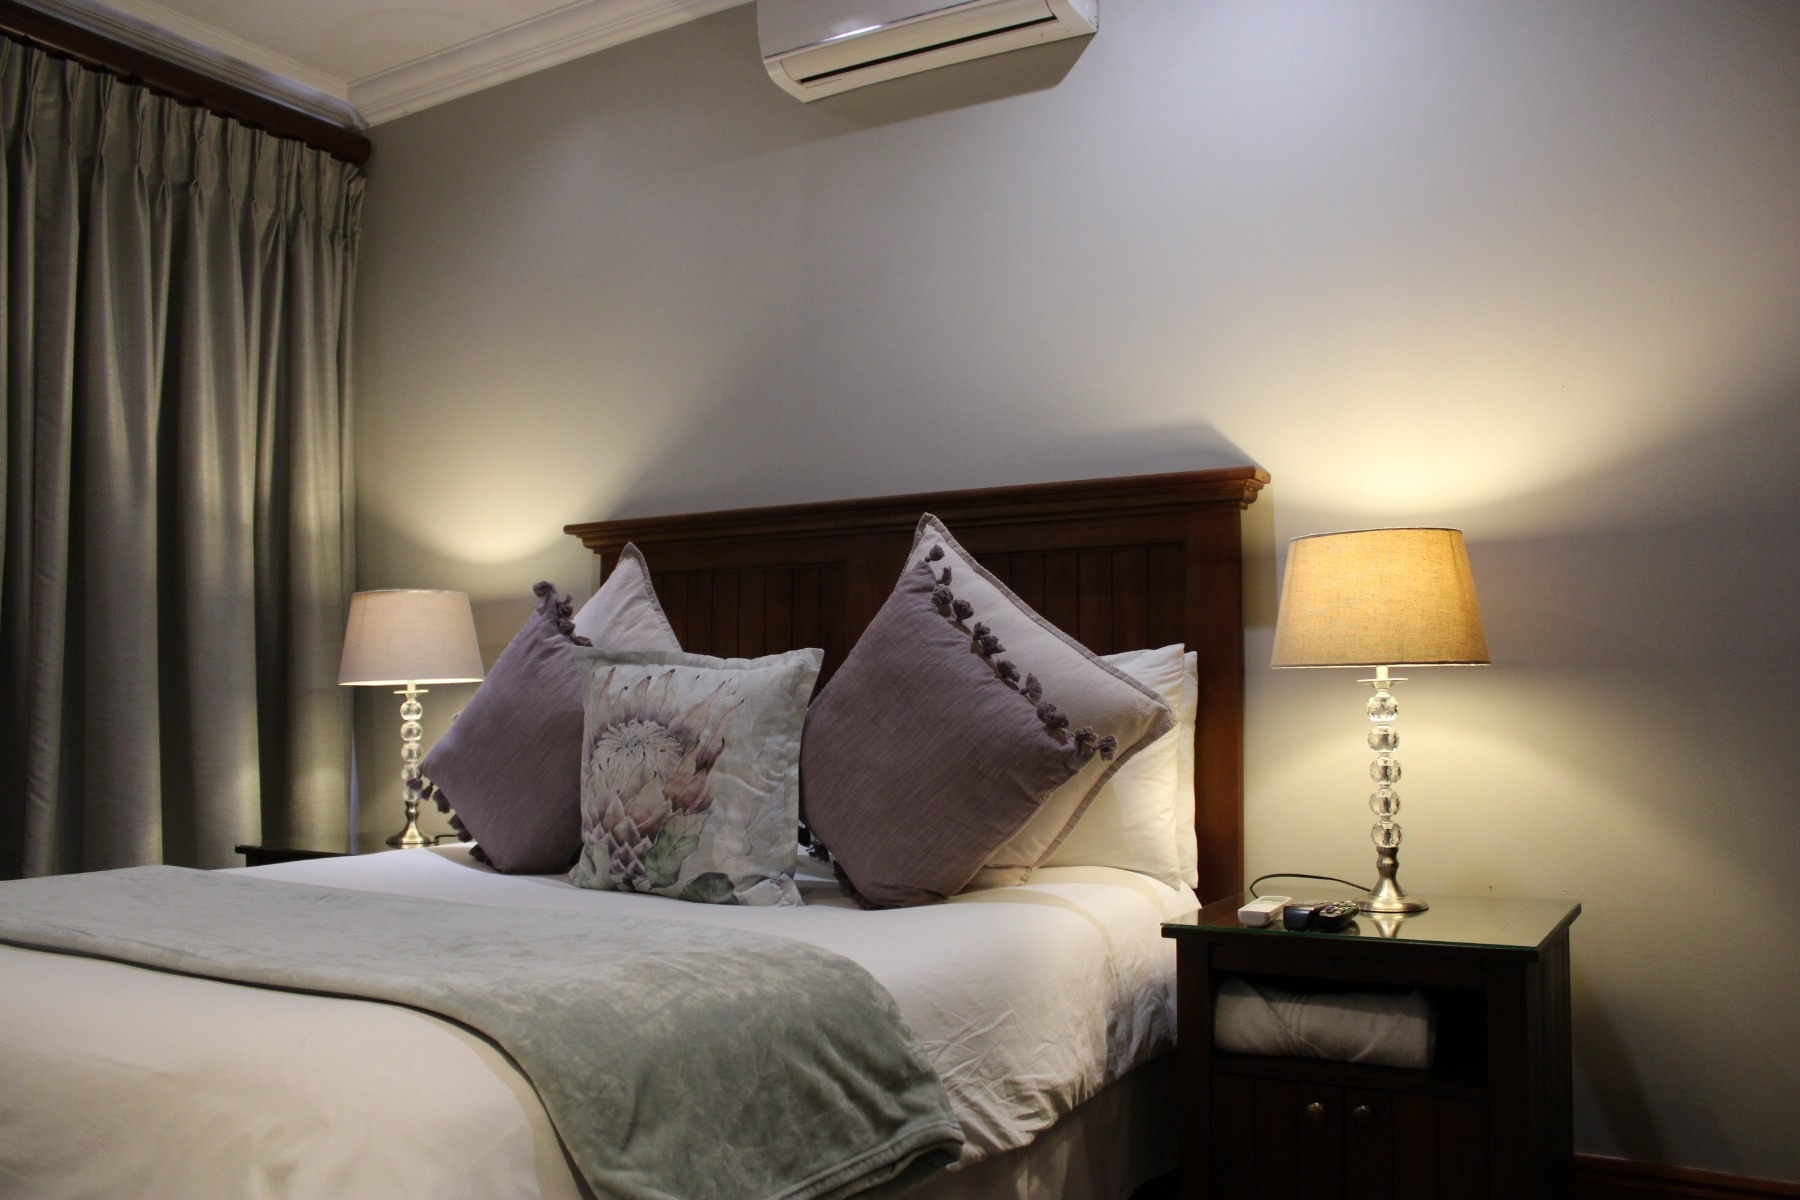 abiento-guesthouse-room6-1